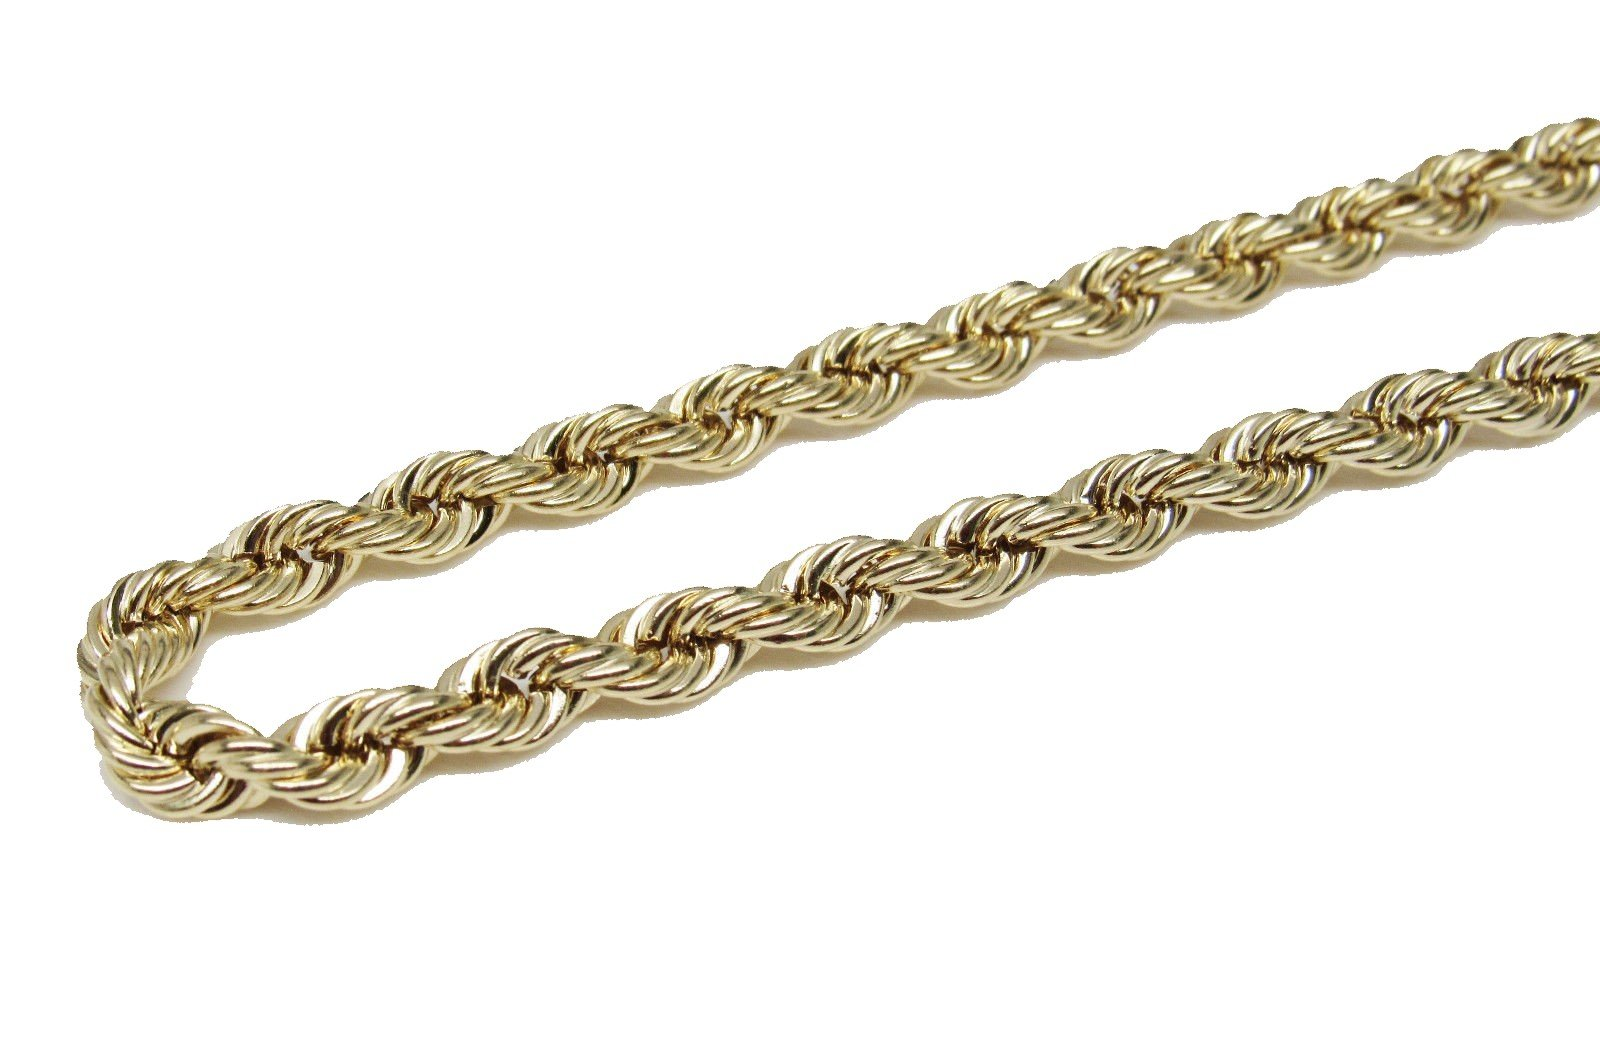 10K Yellow Gold Italian Rope Chain 20'' 5mm wide Hollow by Melano Creation